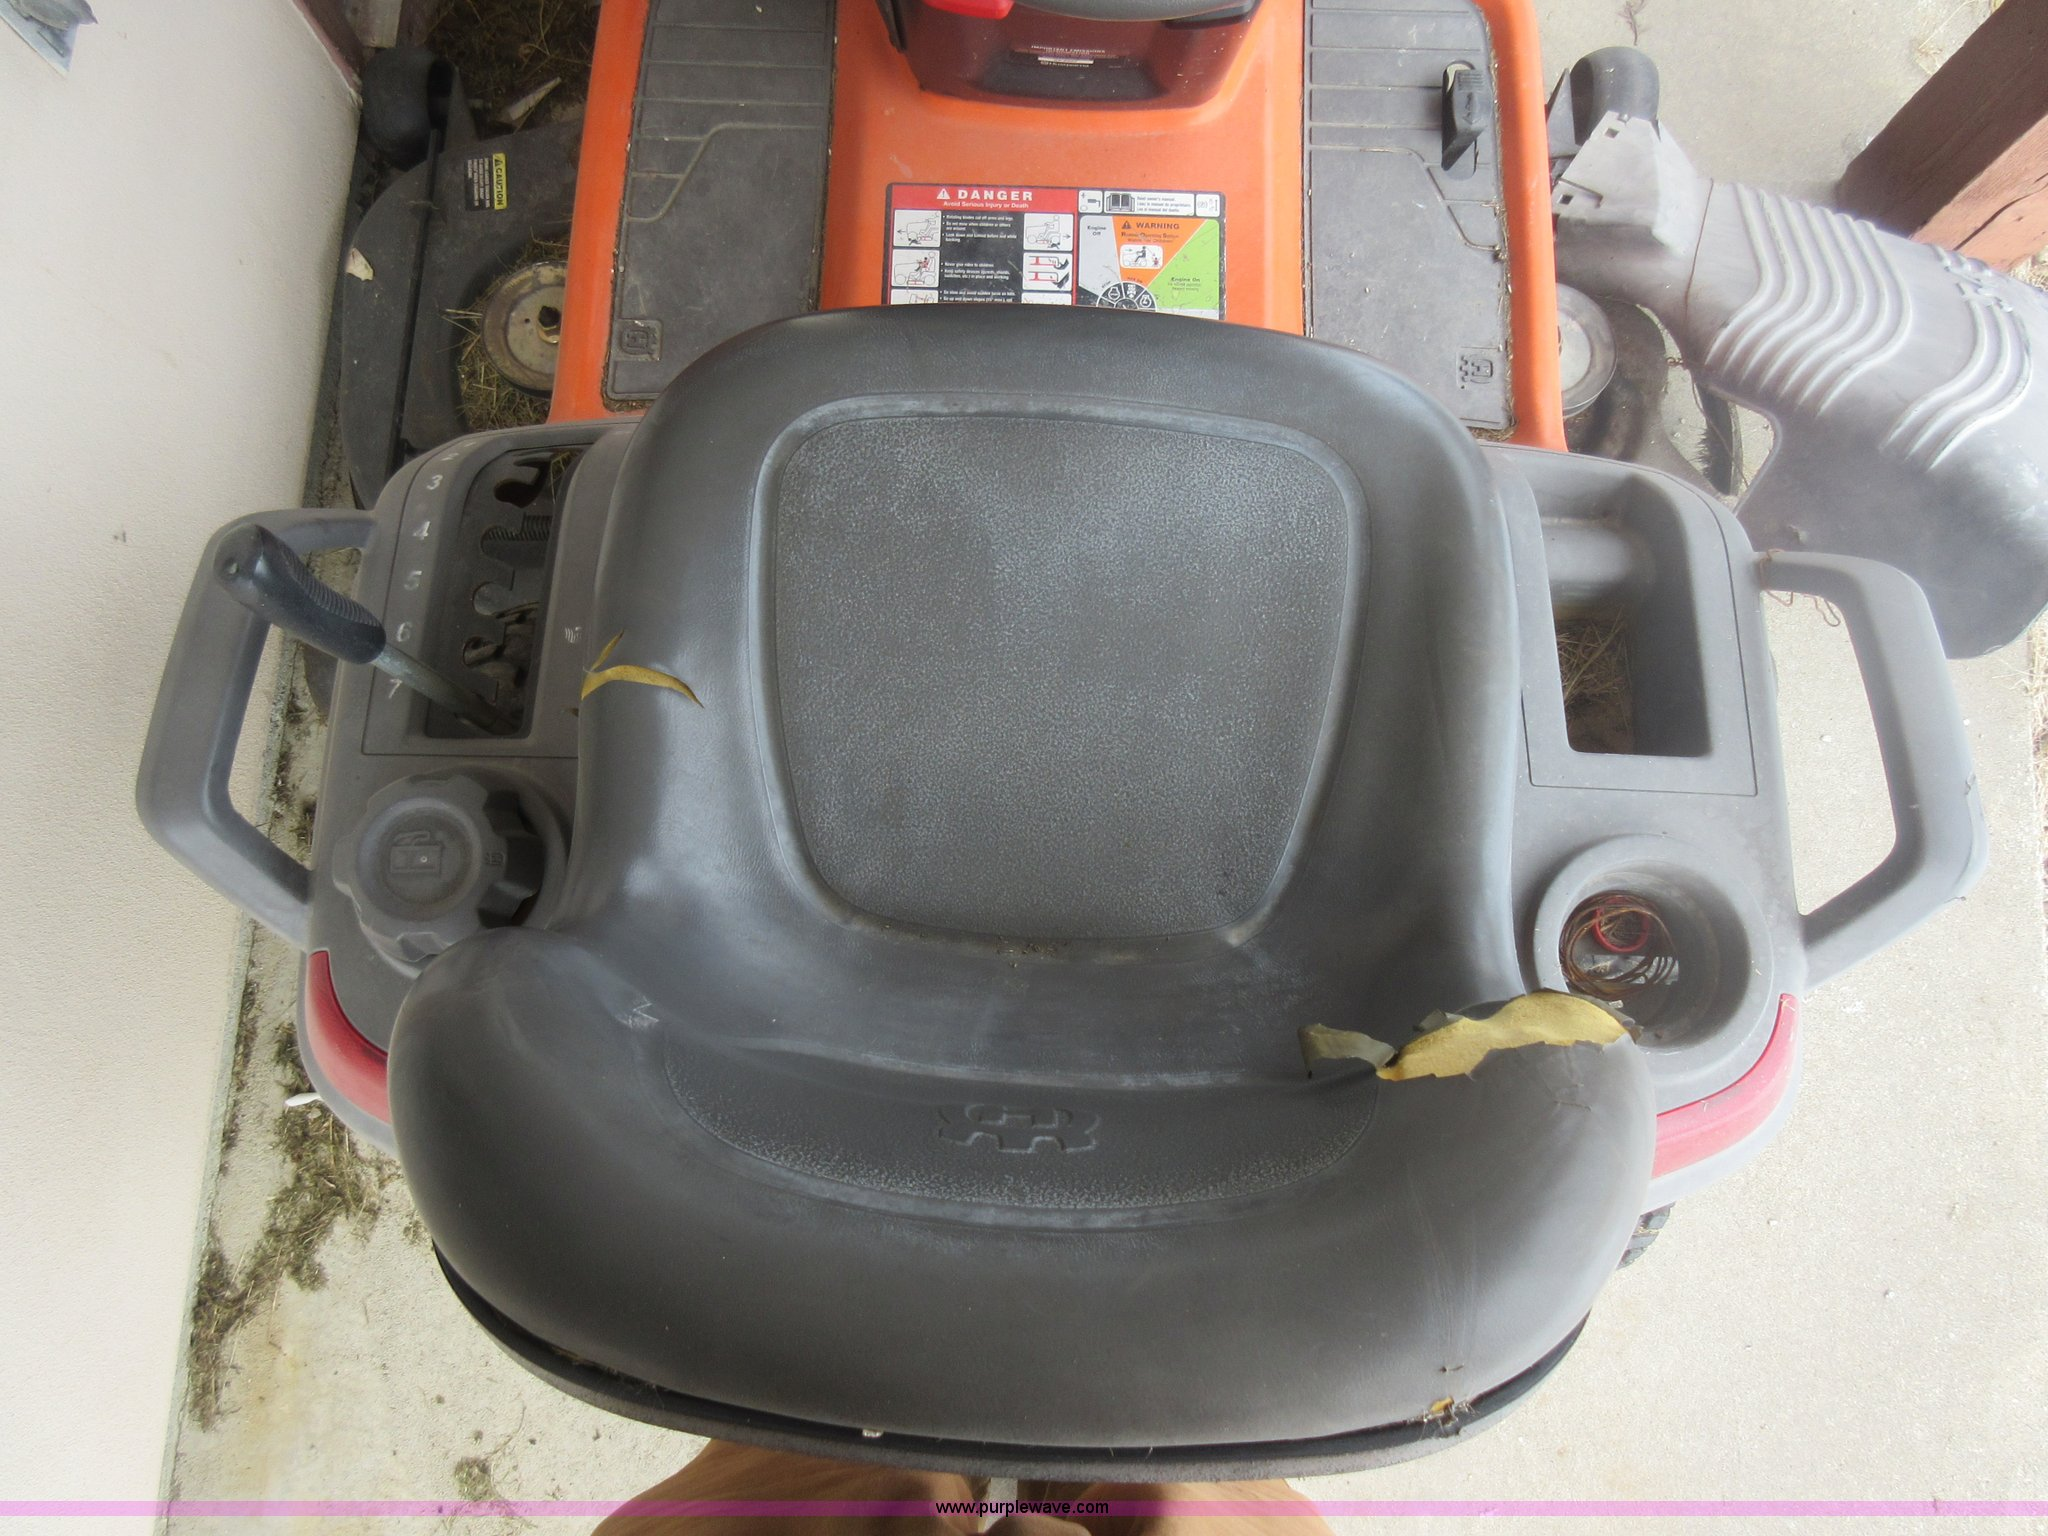 2007 Husqvarna LGT2654 lawn mower | Item AW9070 | SOLD! Marc